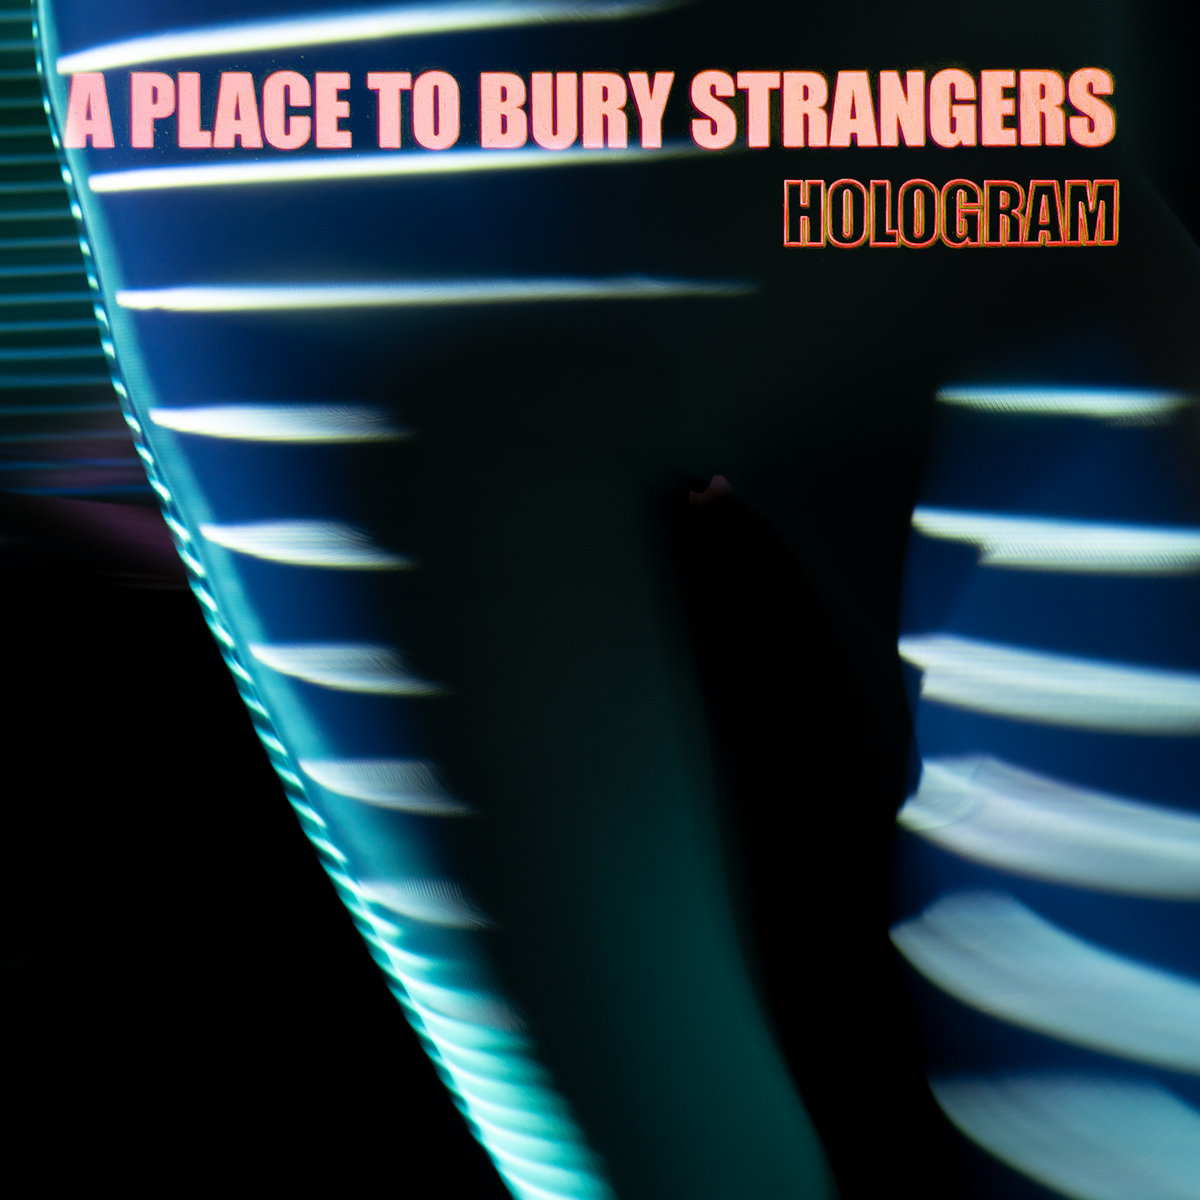 A Place To Bury Strangers – Hologram